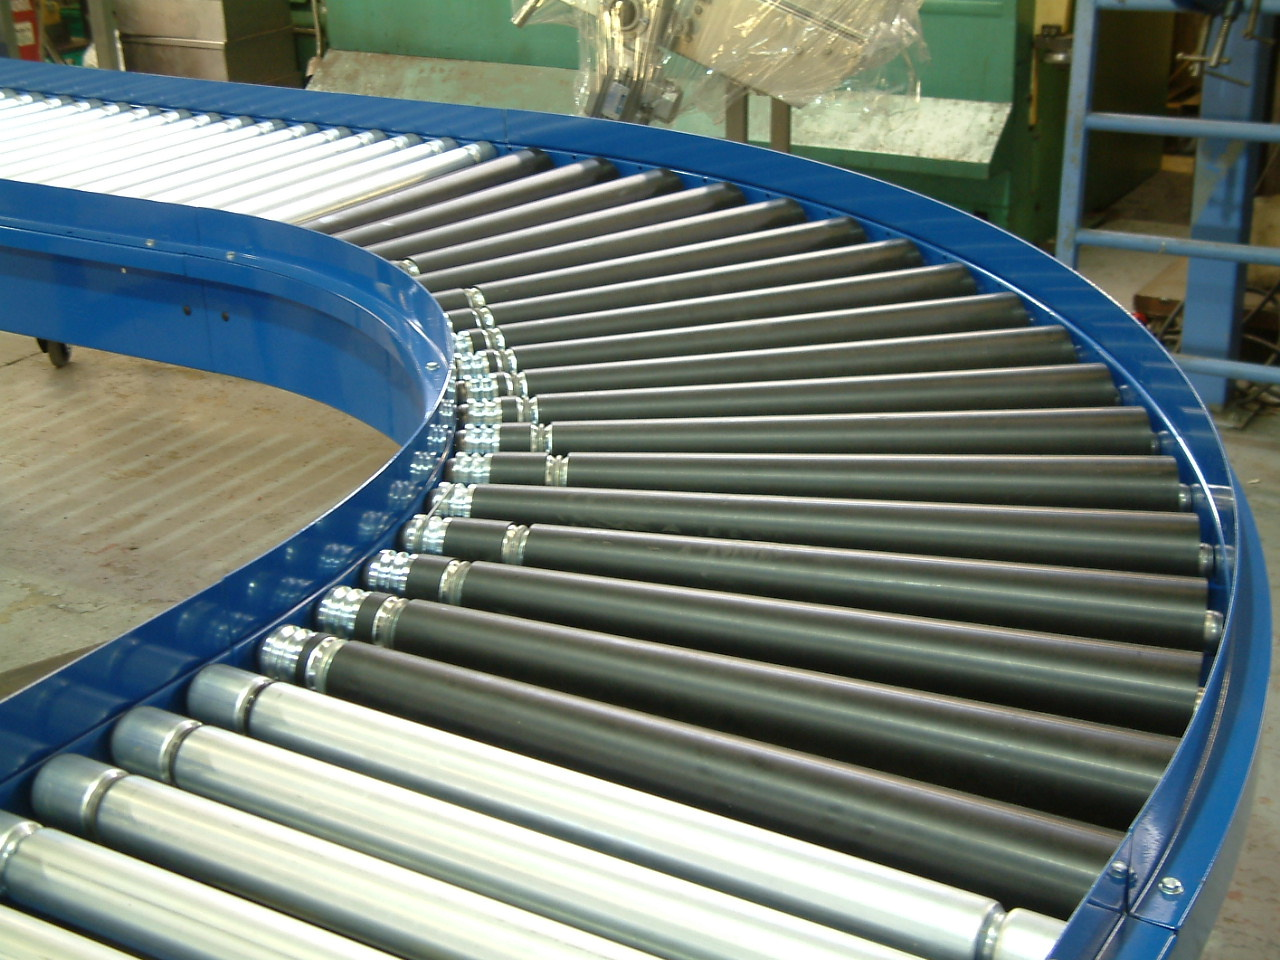 Conveyors archives conveyor belt tel 01525 Motorized conveyor belt